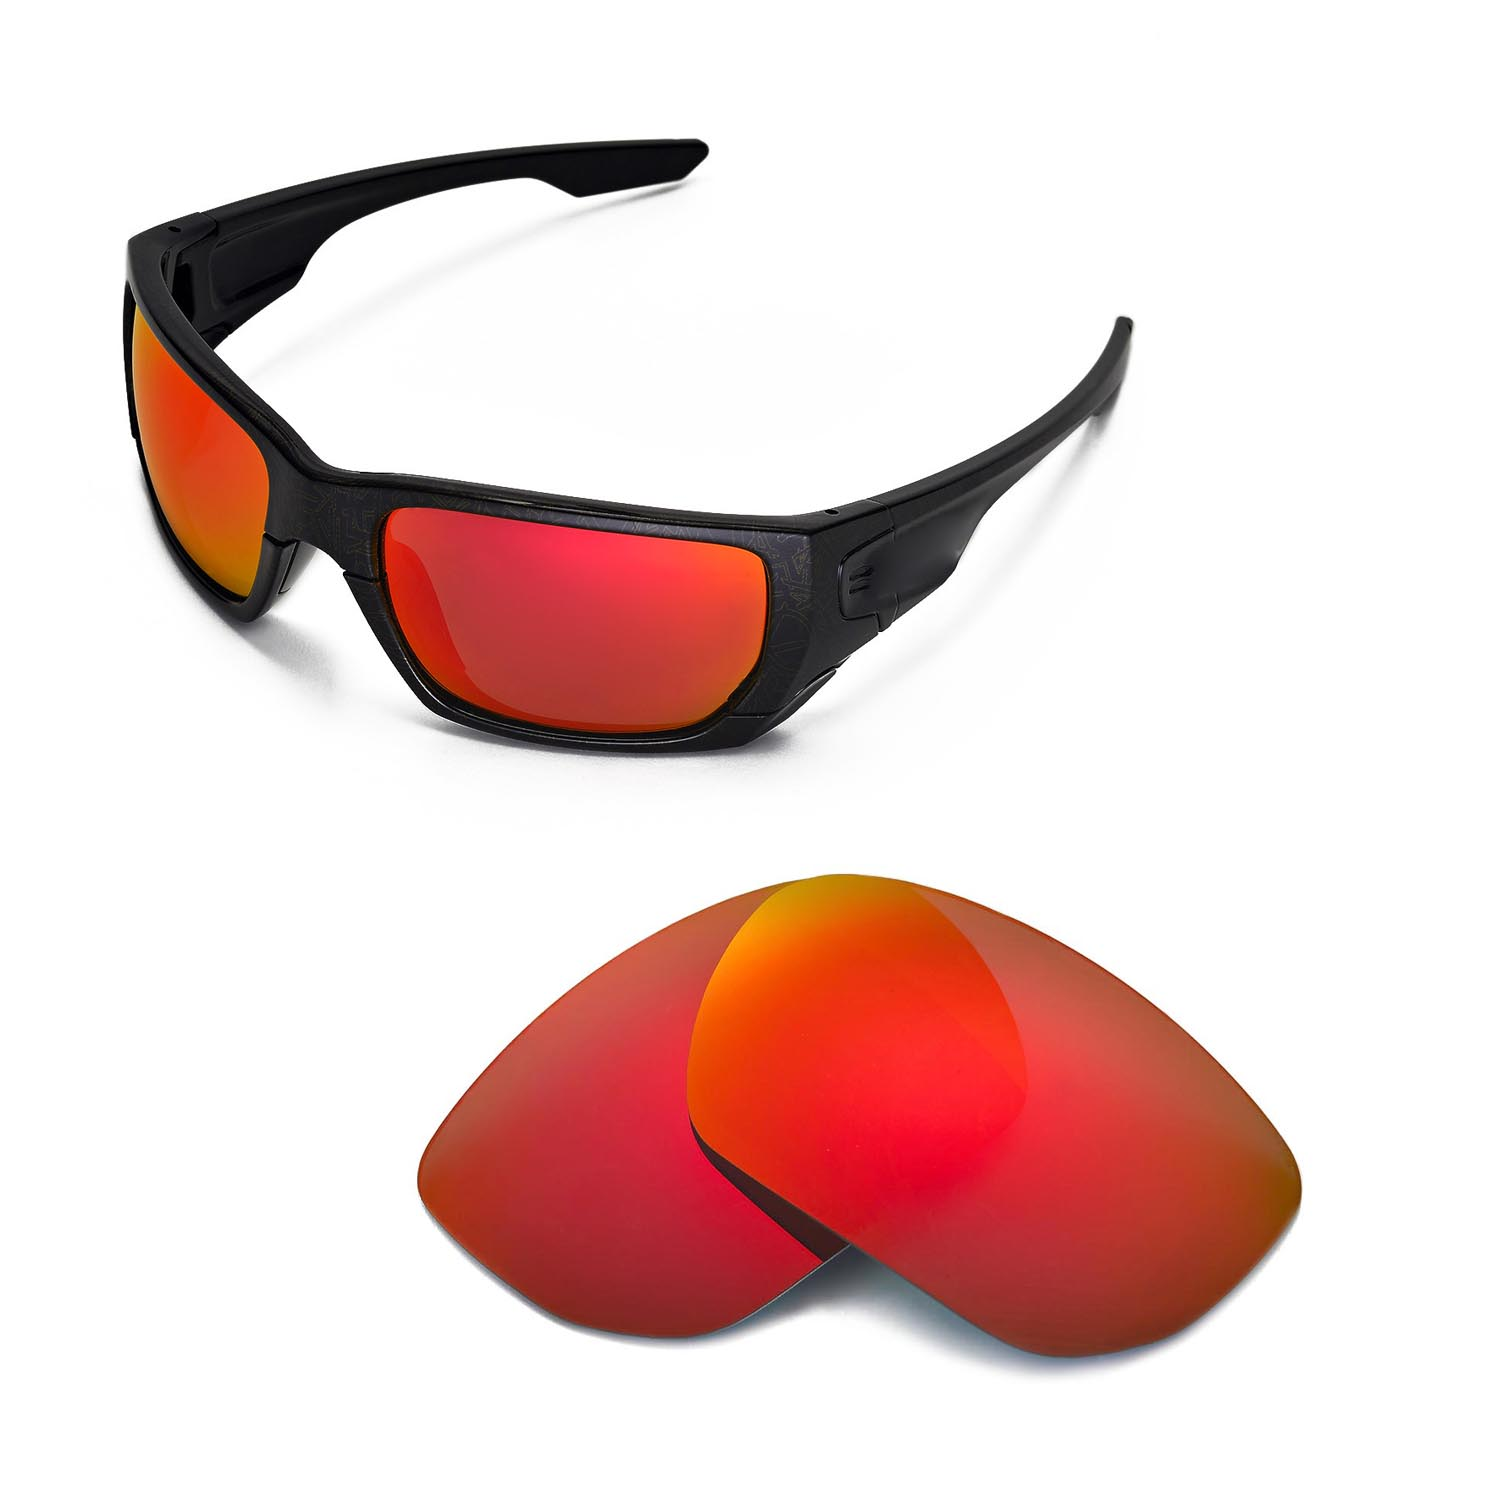 New Walleva Polarized Fire Red Lenses For Oakley Style ...